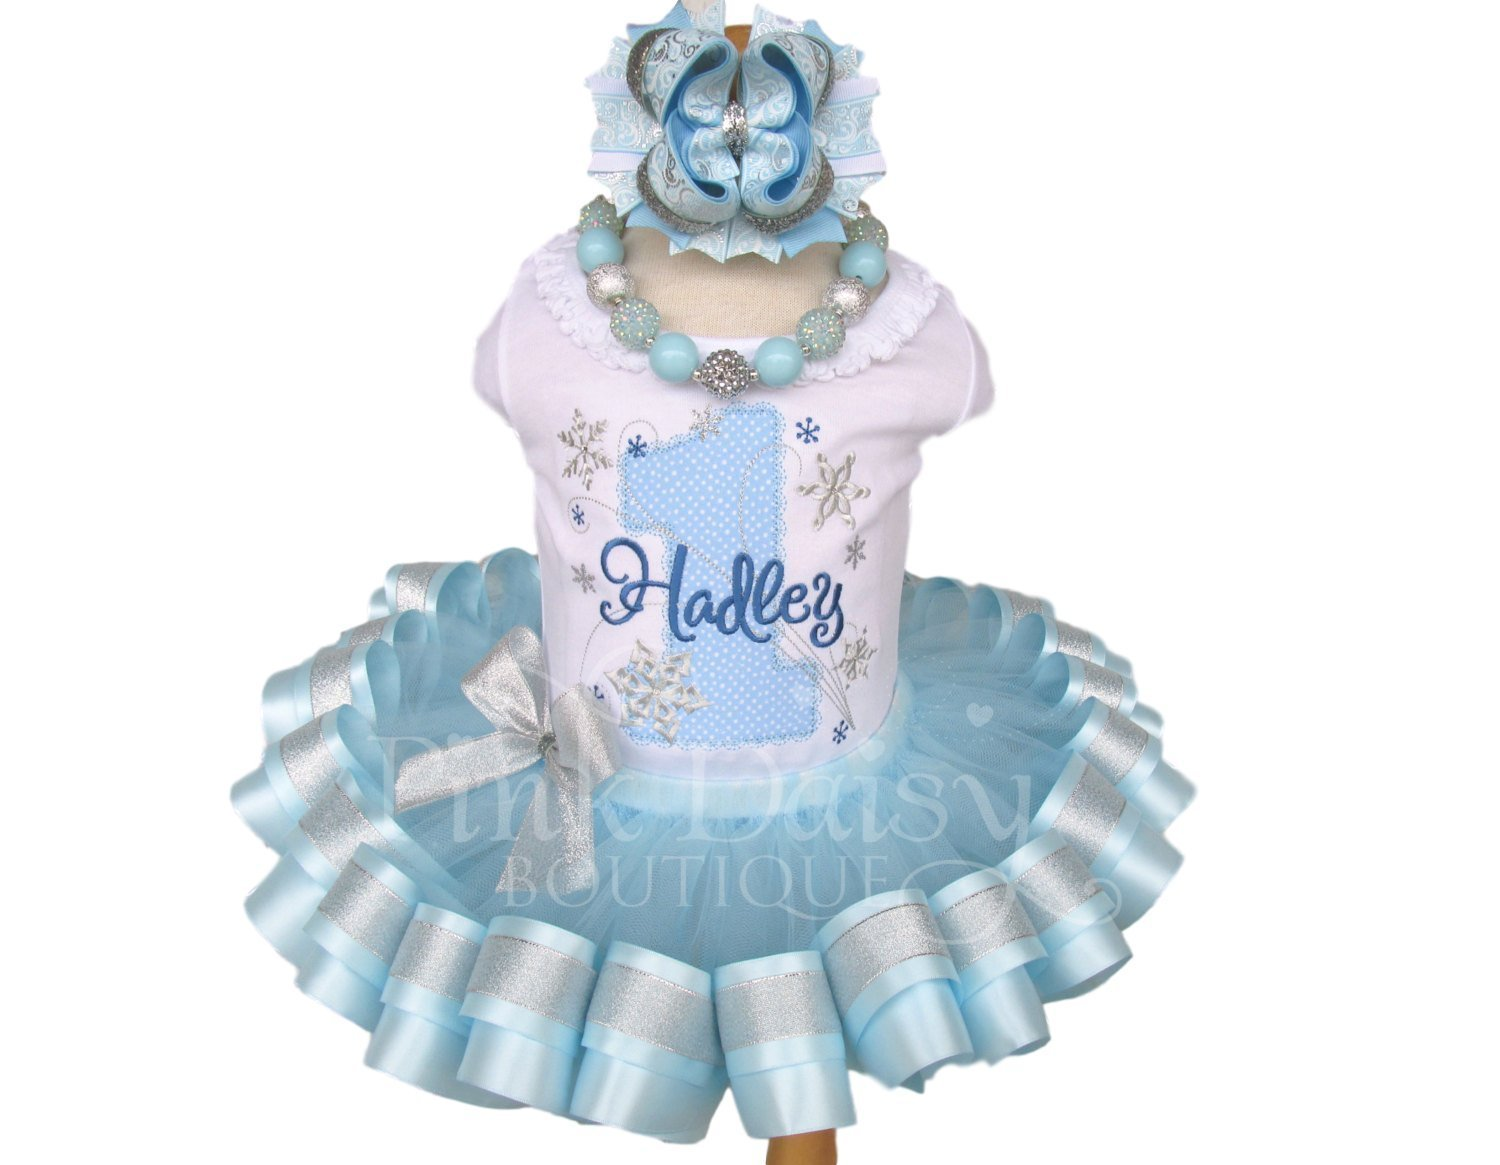 Light Blue and Silver Snowflake Birthday Outfit with Personalized Shirt and Ribbon Trim Tutu